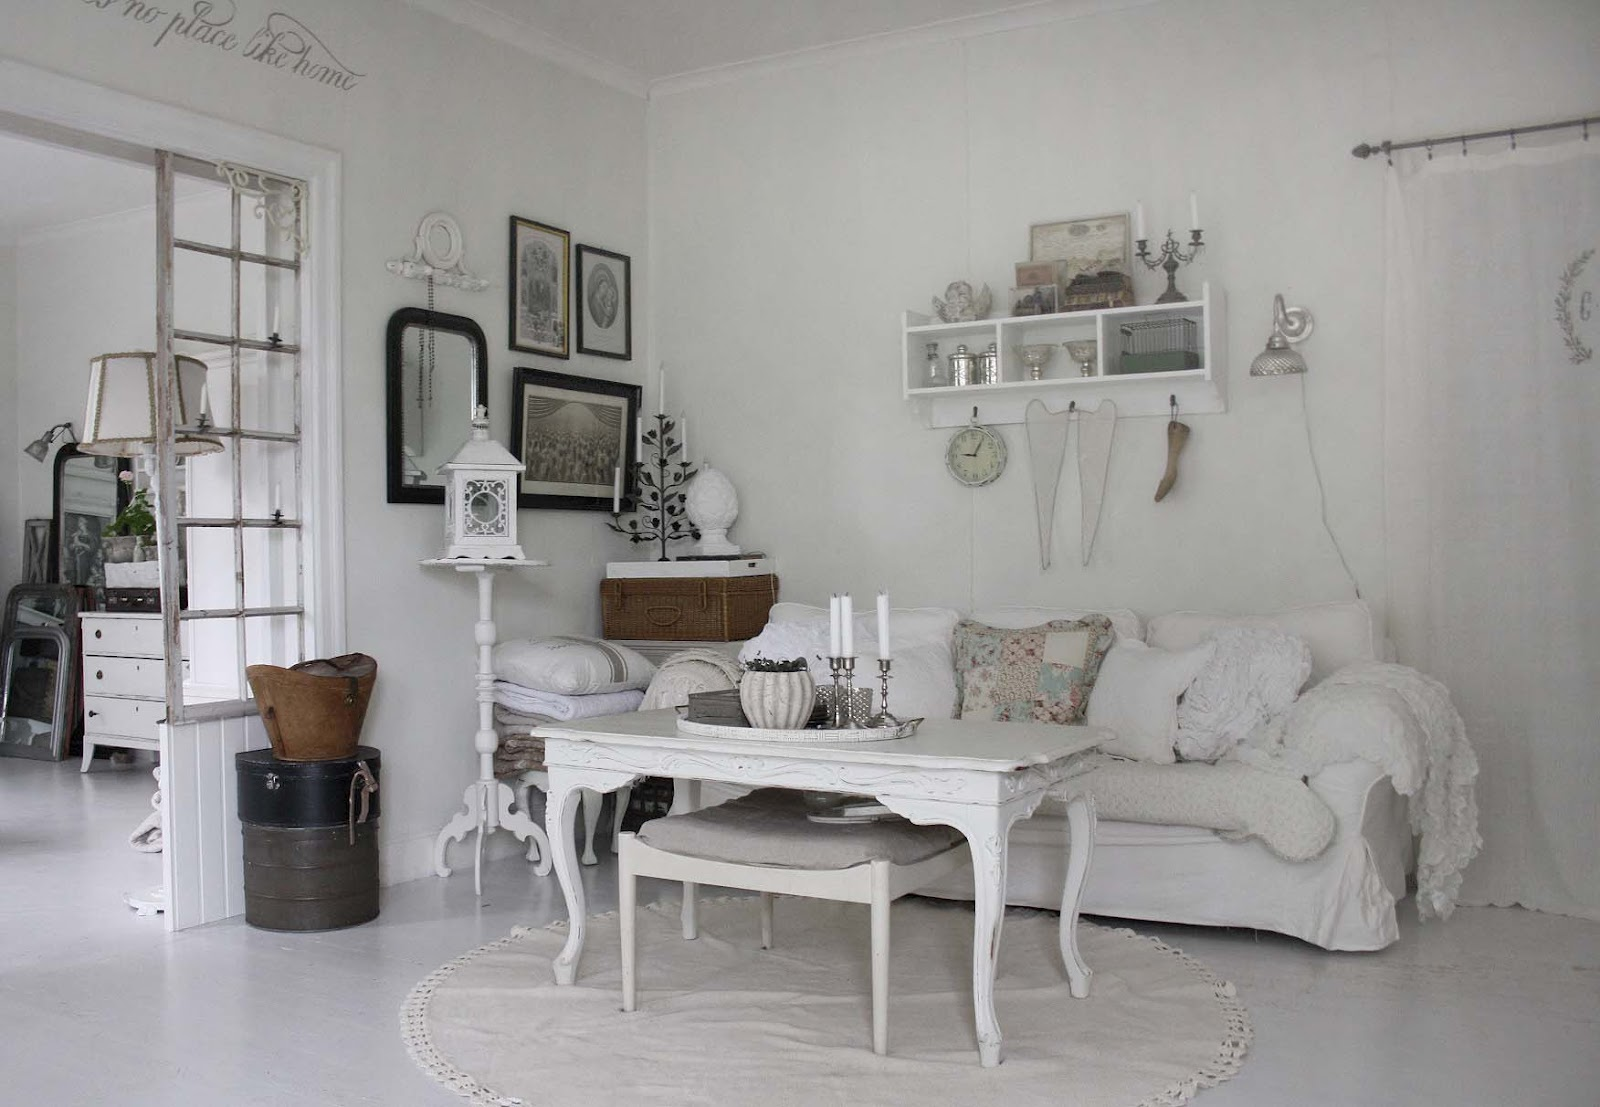 shabby chic small living room ideas modern wallpapers for rooms 37 dream designs decoholic 27 via girls vintage white chabby interior